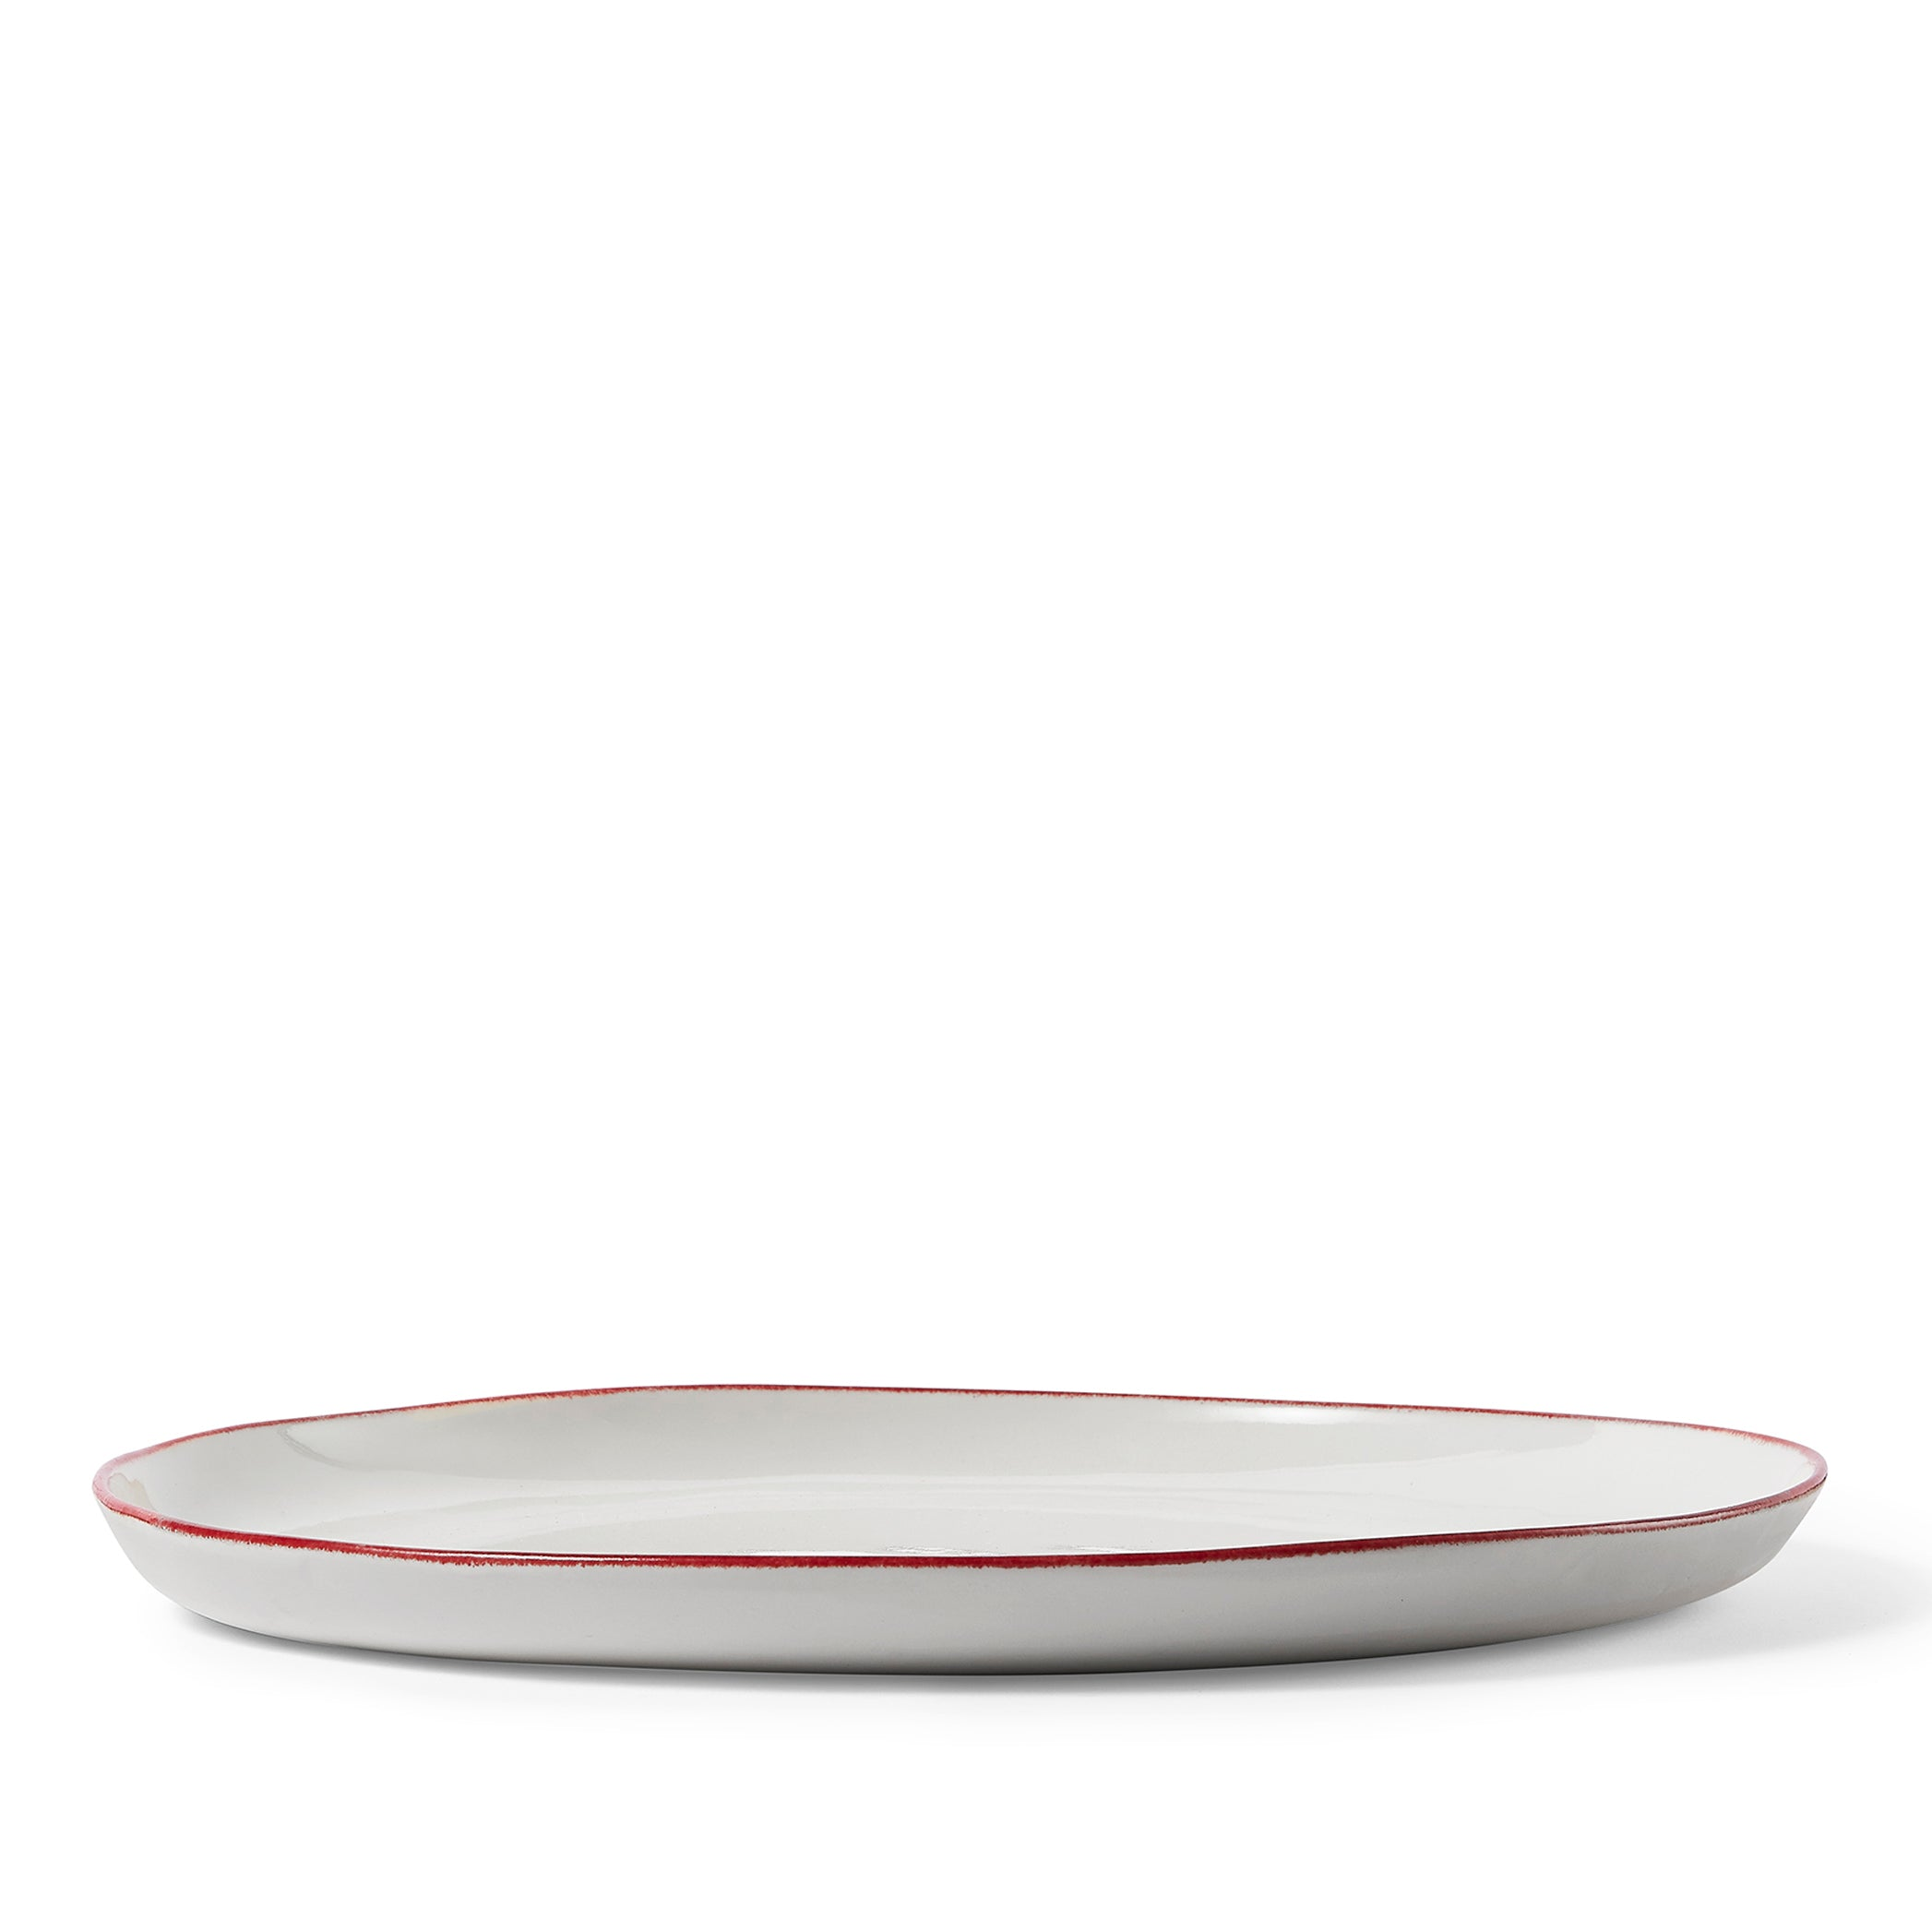 Made to order - S&B Handmade 31cm Porcelain Dinner Plate with Red Rim